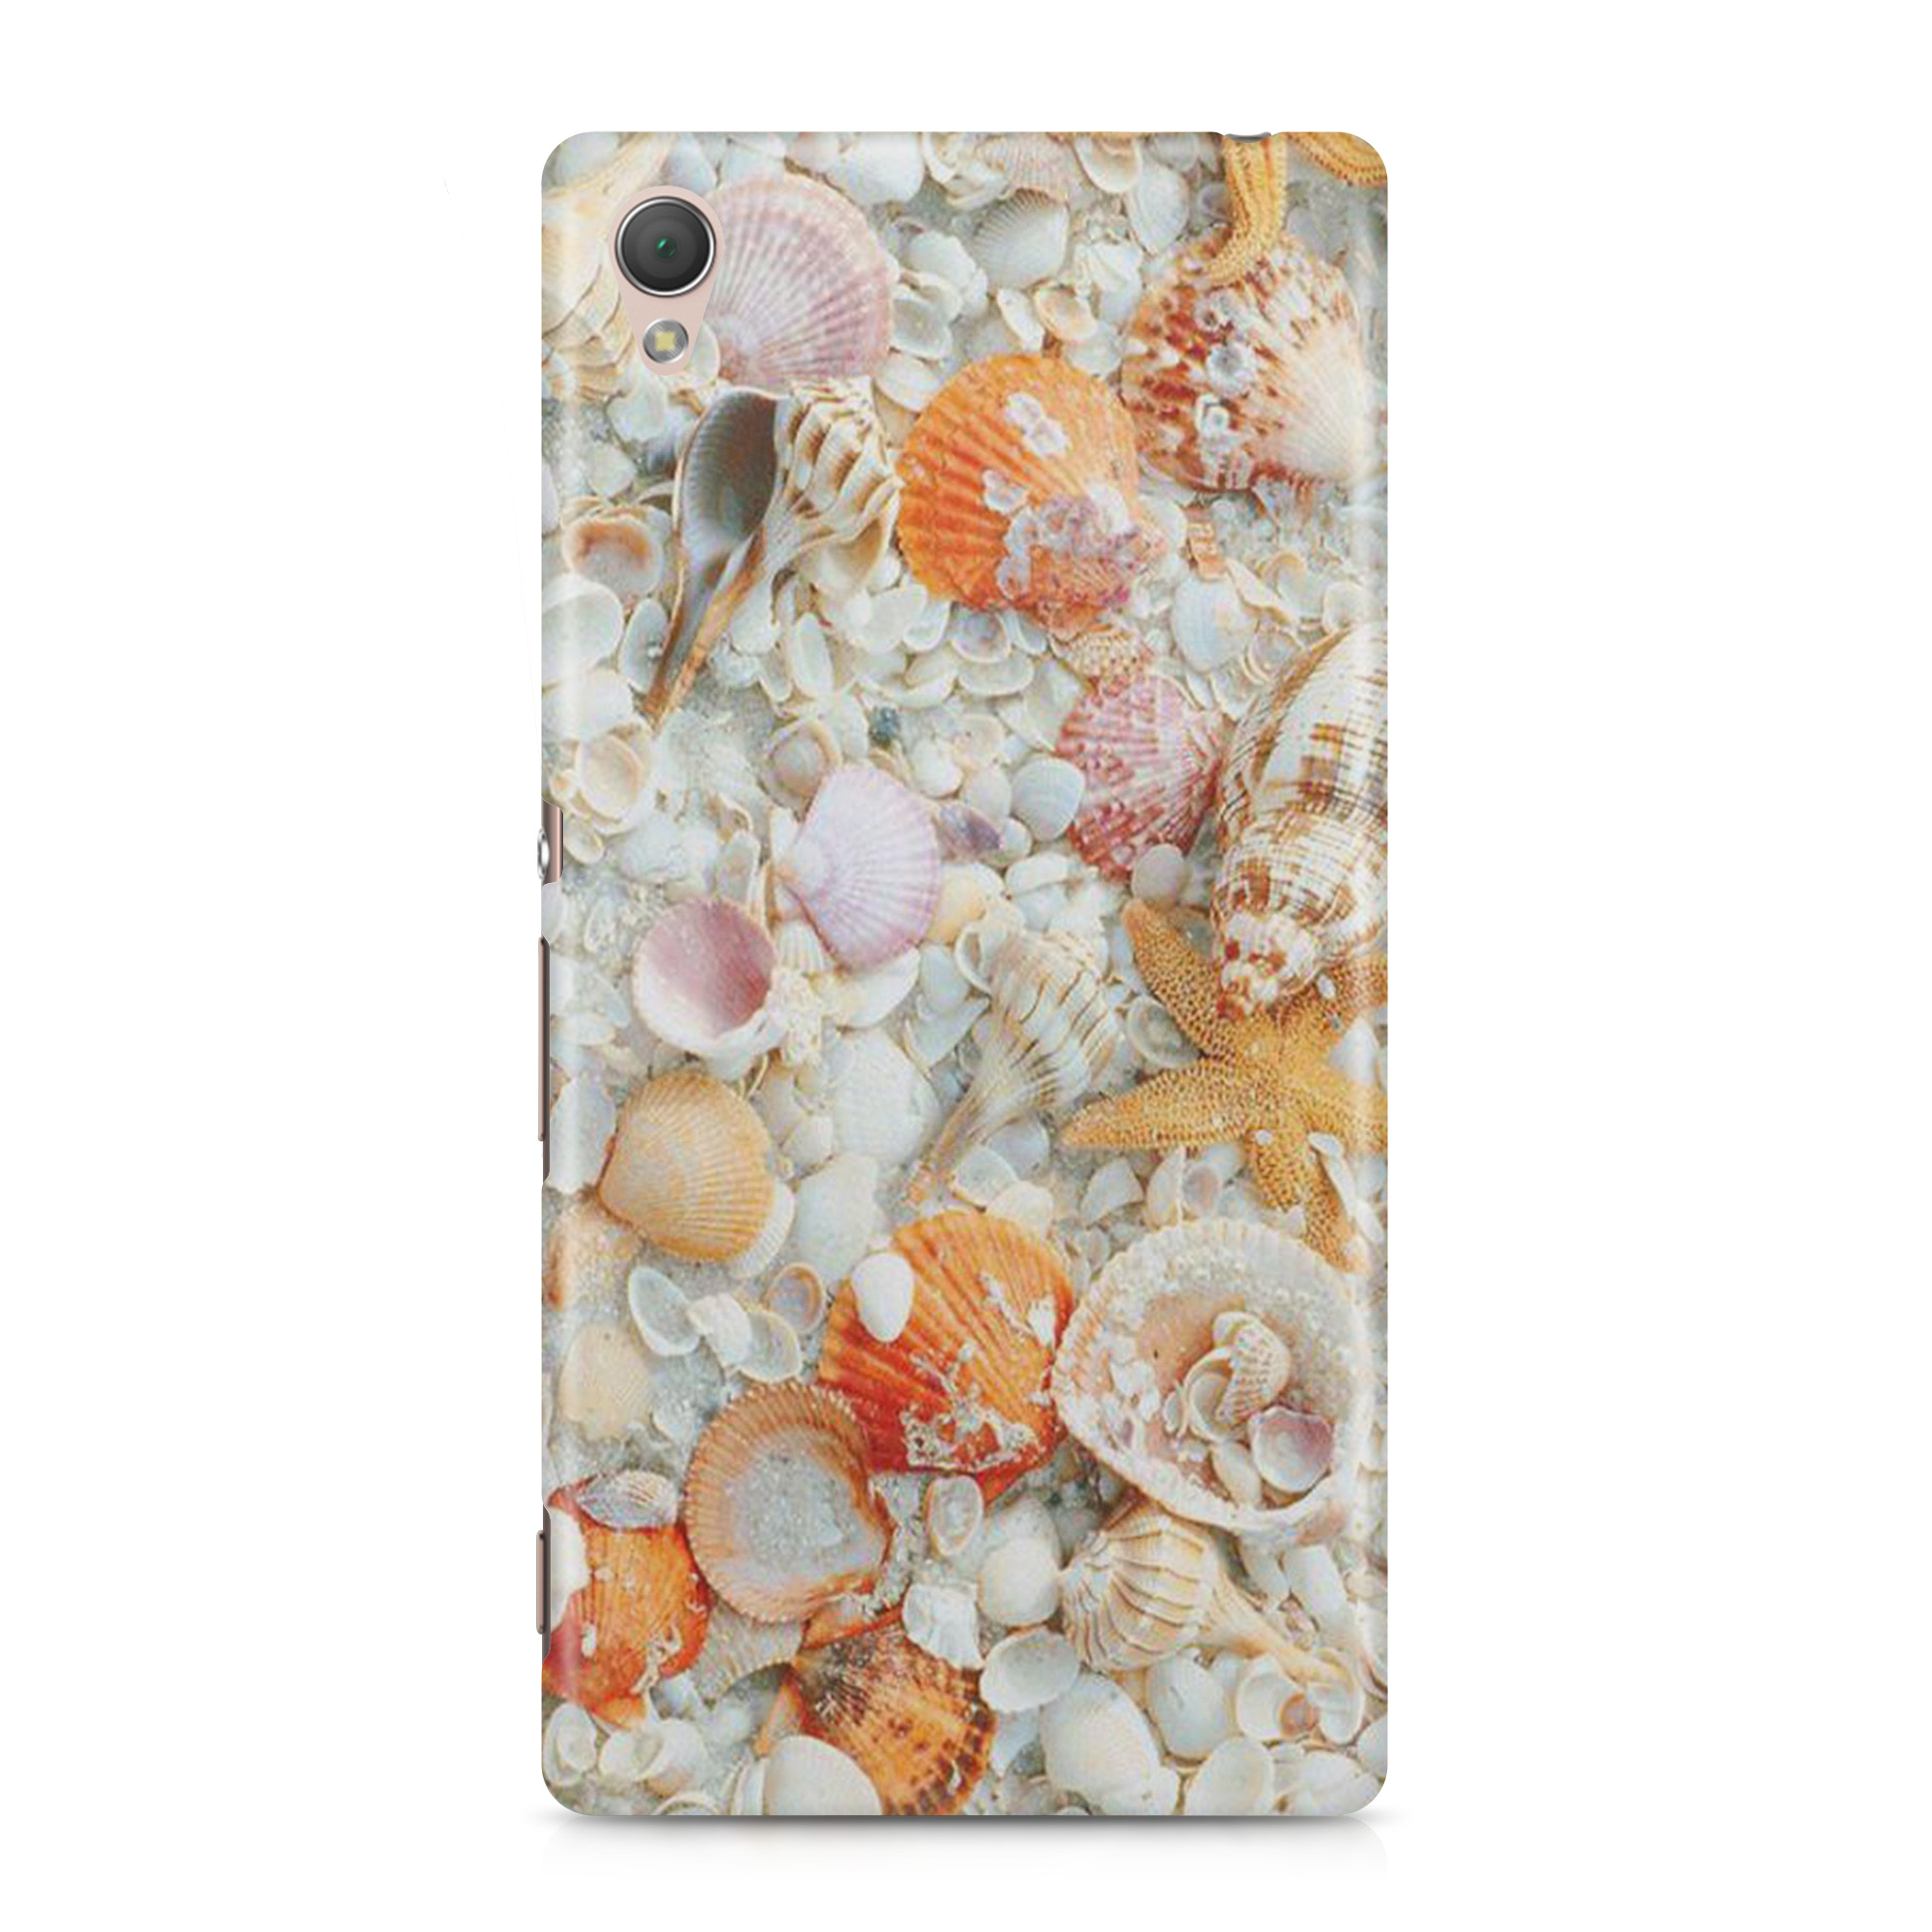 Saltwater Game Fish iPhone Cases